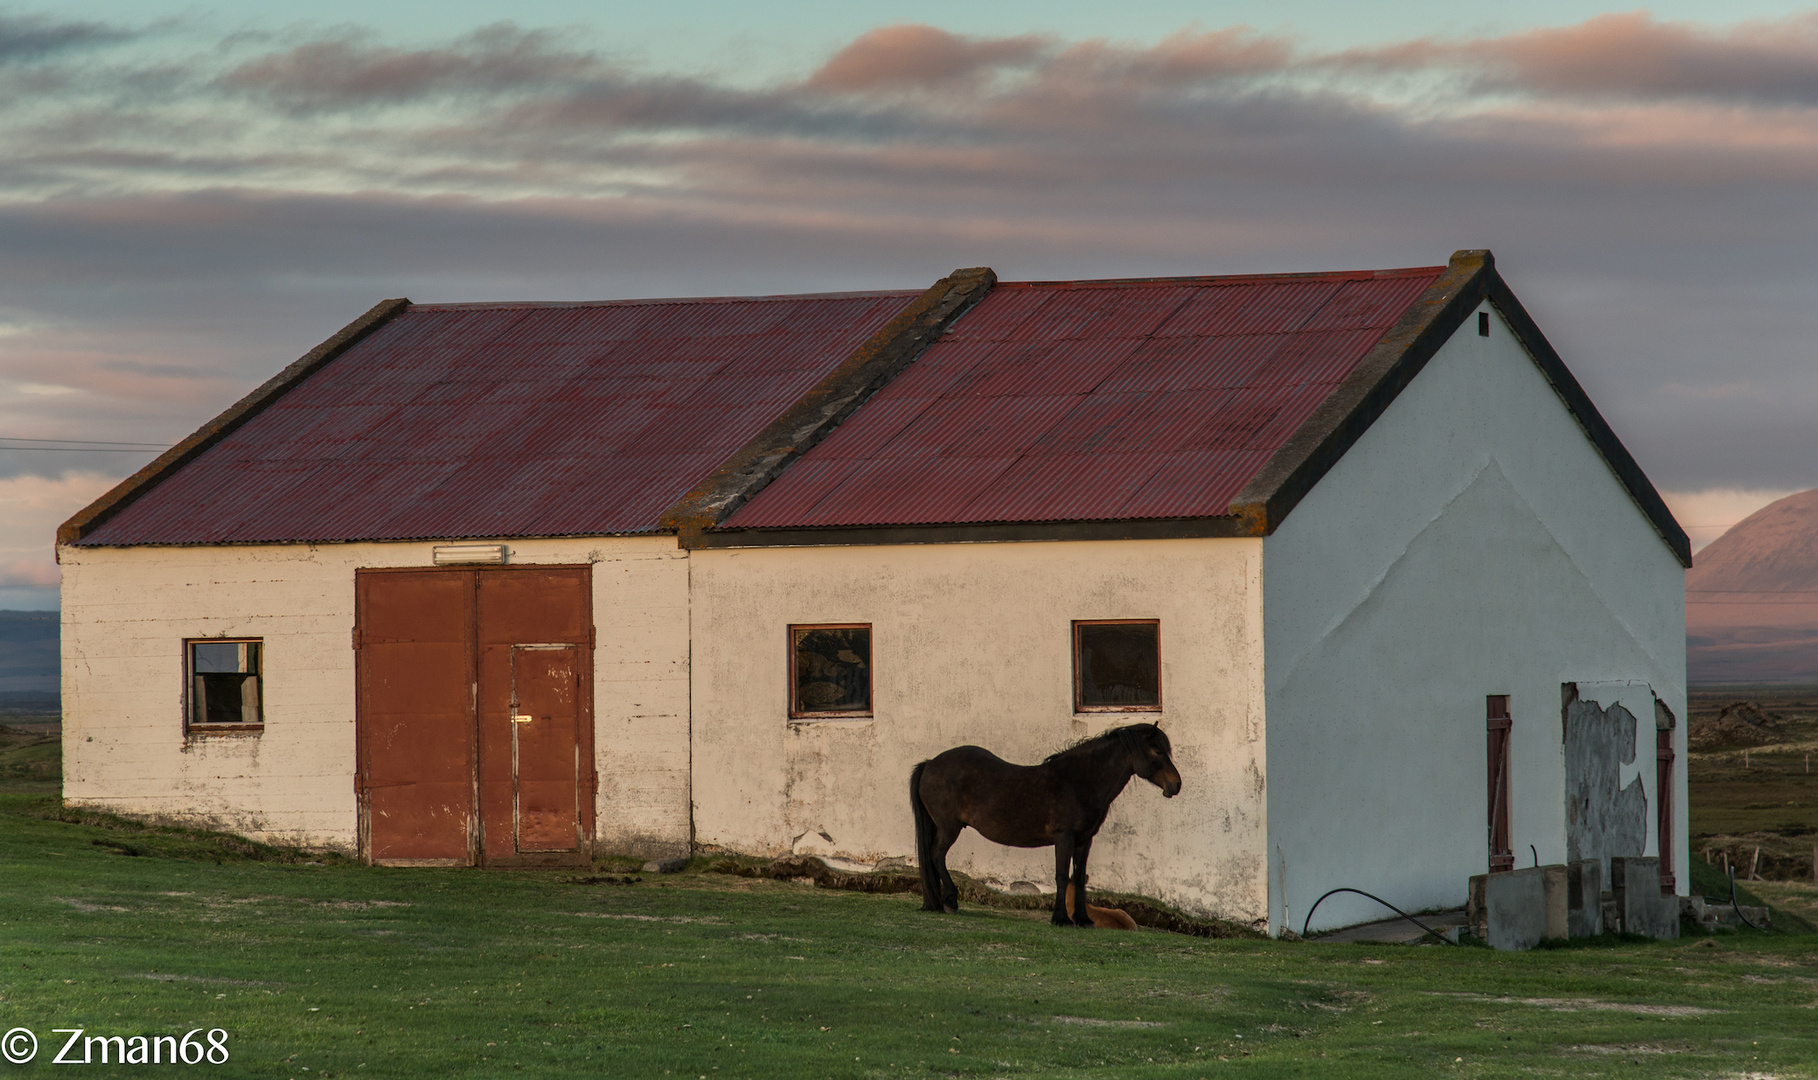 A Horse and a Barn